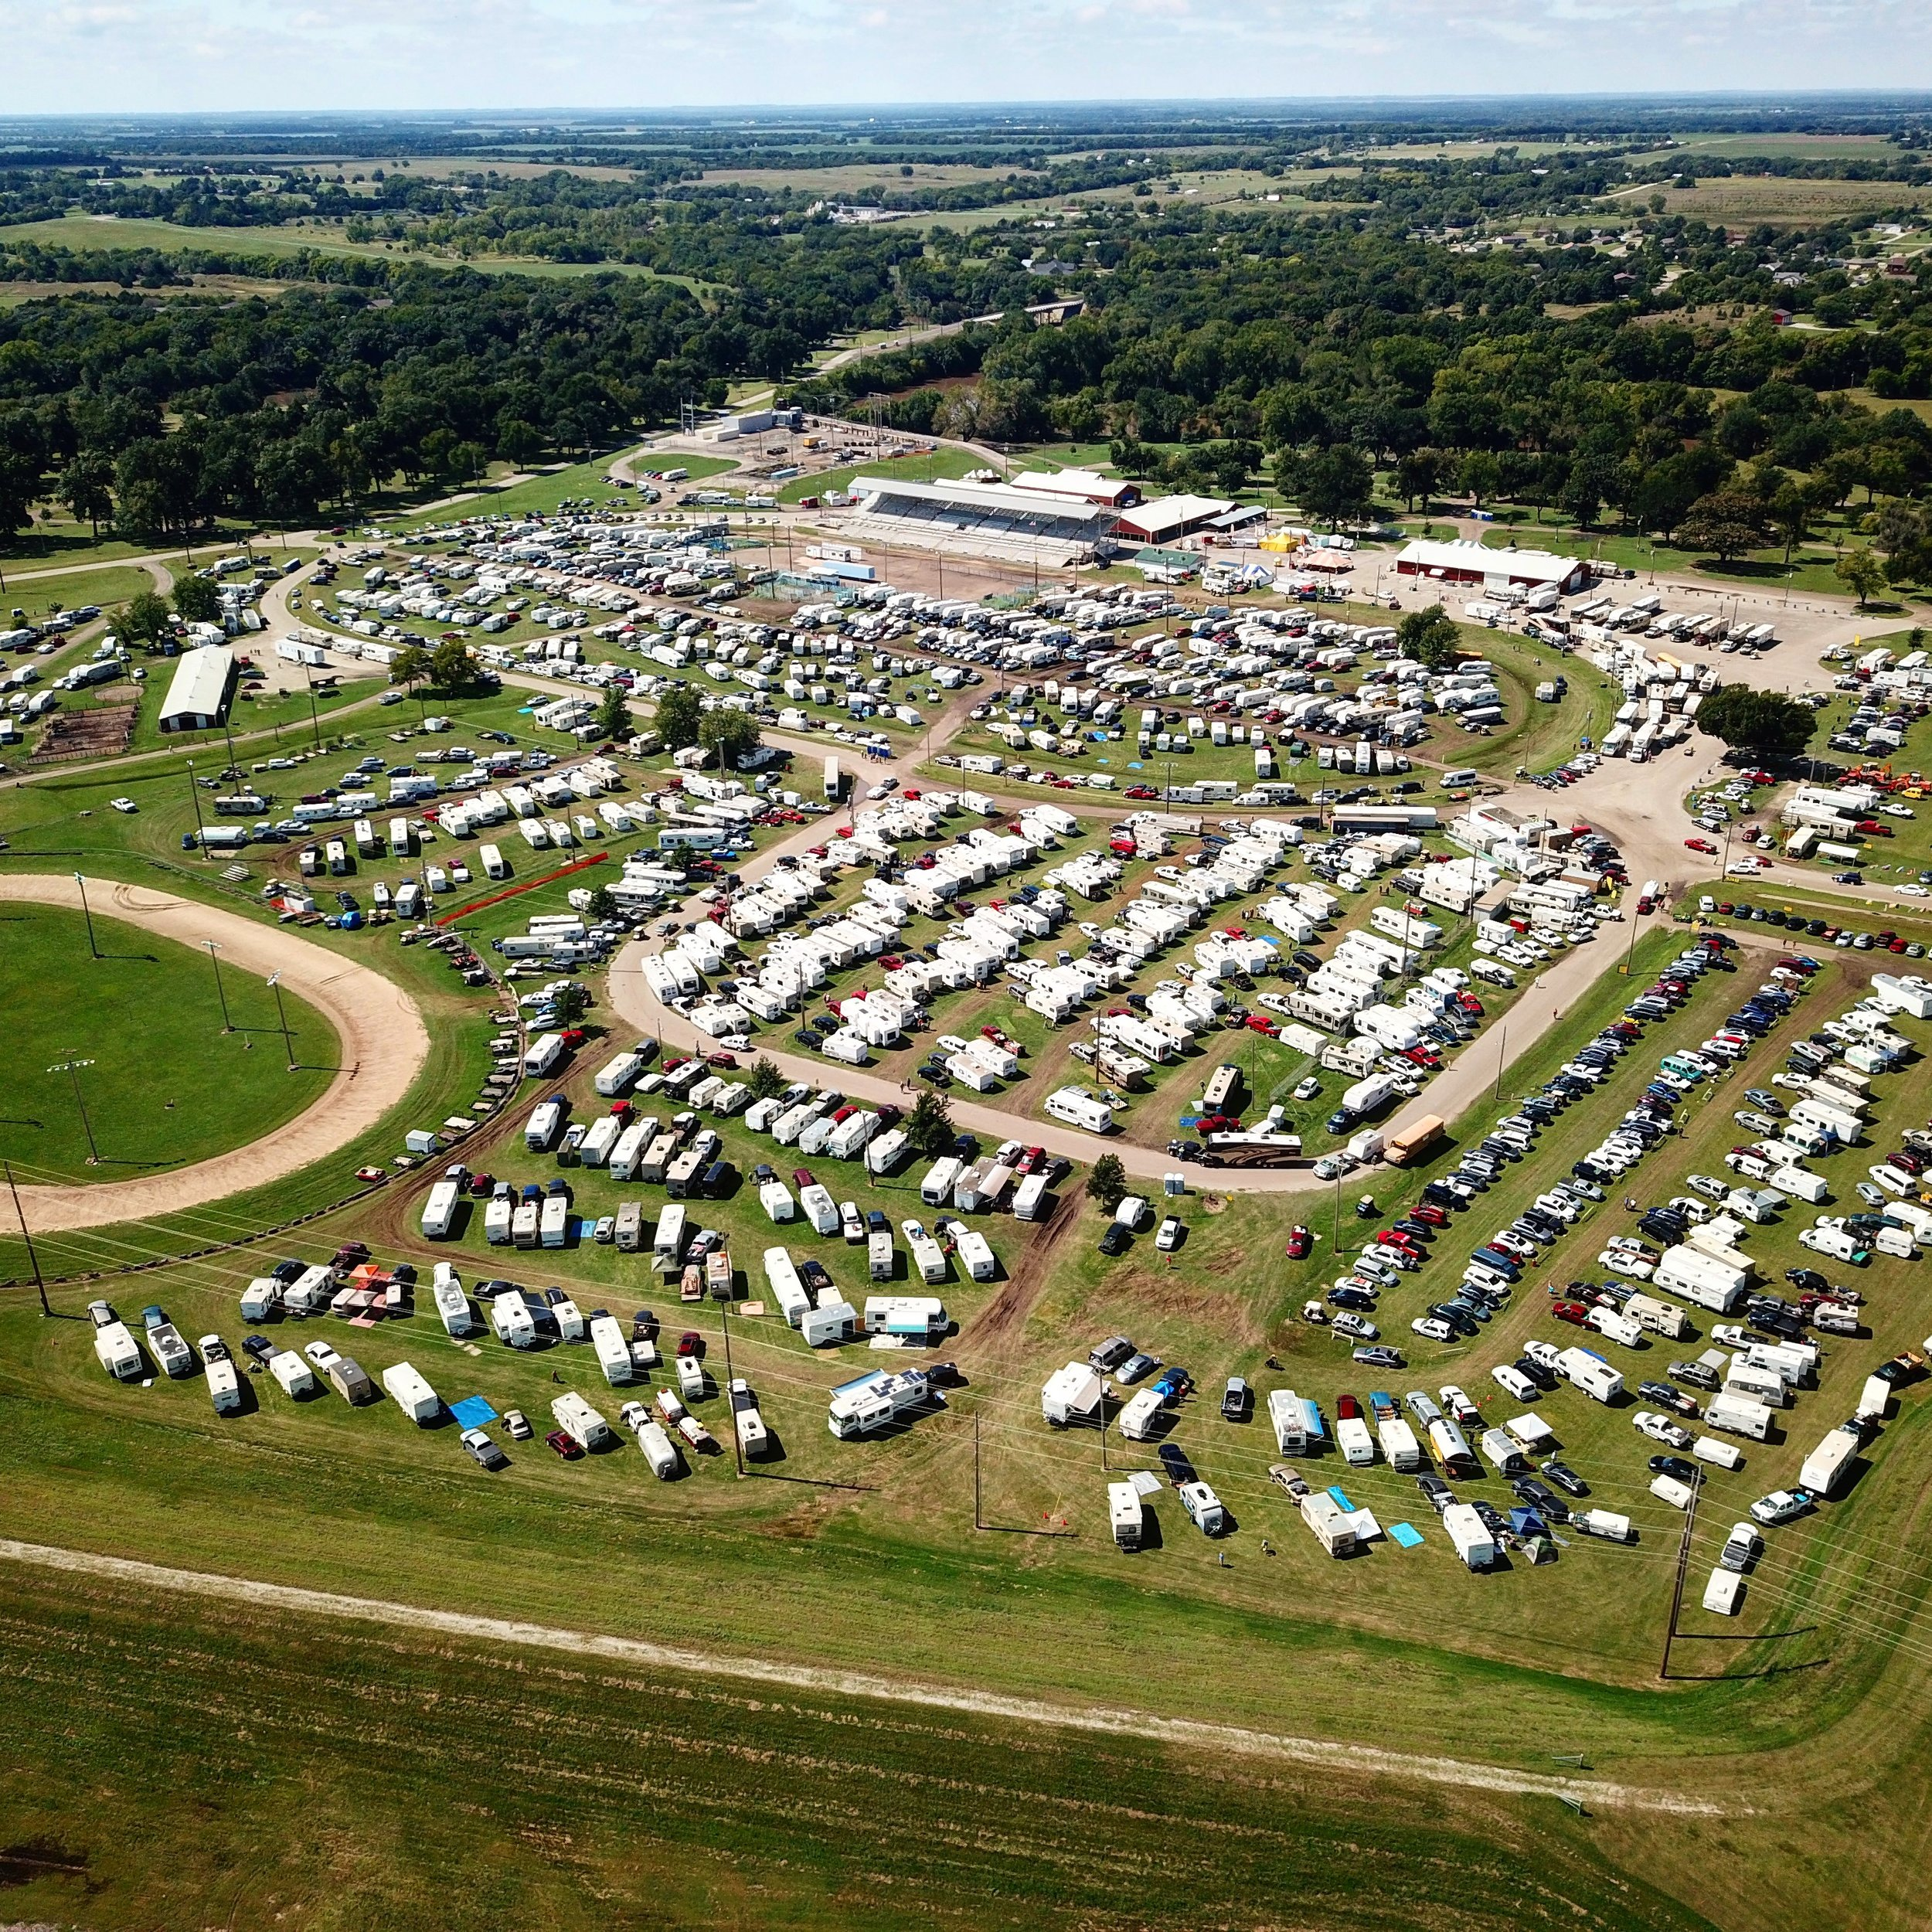 Winfield Fairgrounds On The day of Land Rush. Those are all campers waiting to enter the two campgrounds (the tree-lined groves at the top of the picture.) I used my DJI Mavic Pro to get this shot off festival grounds.